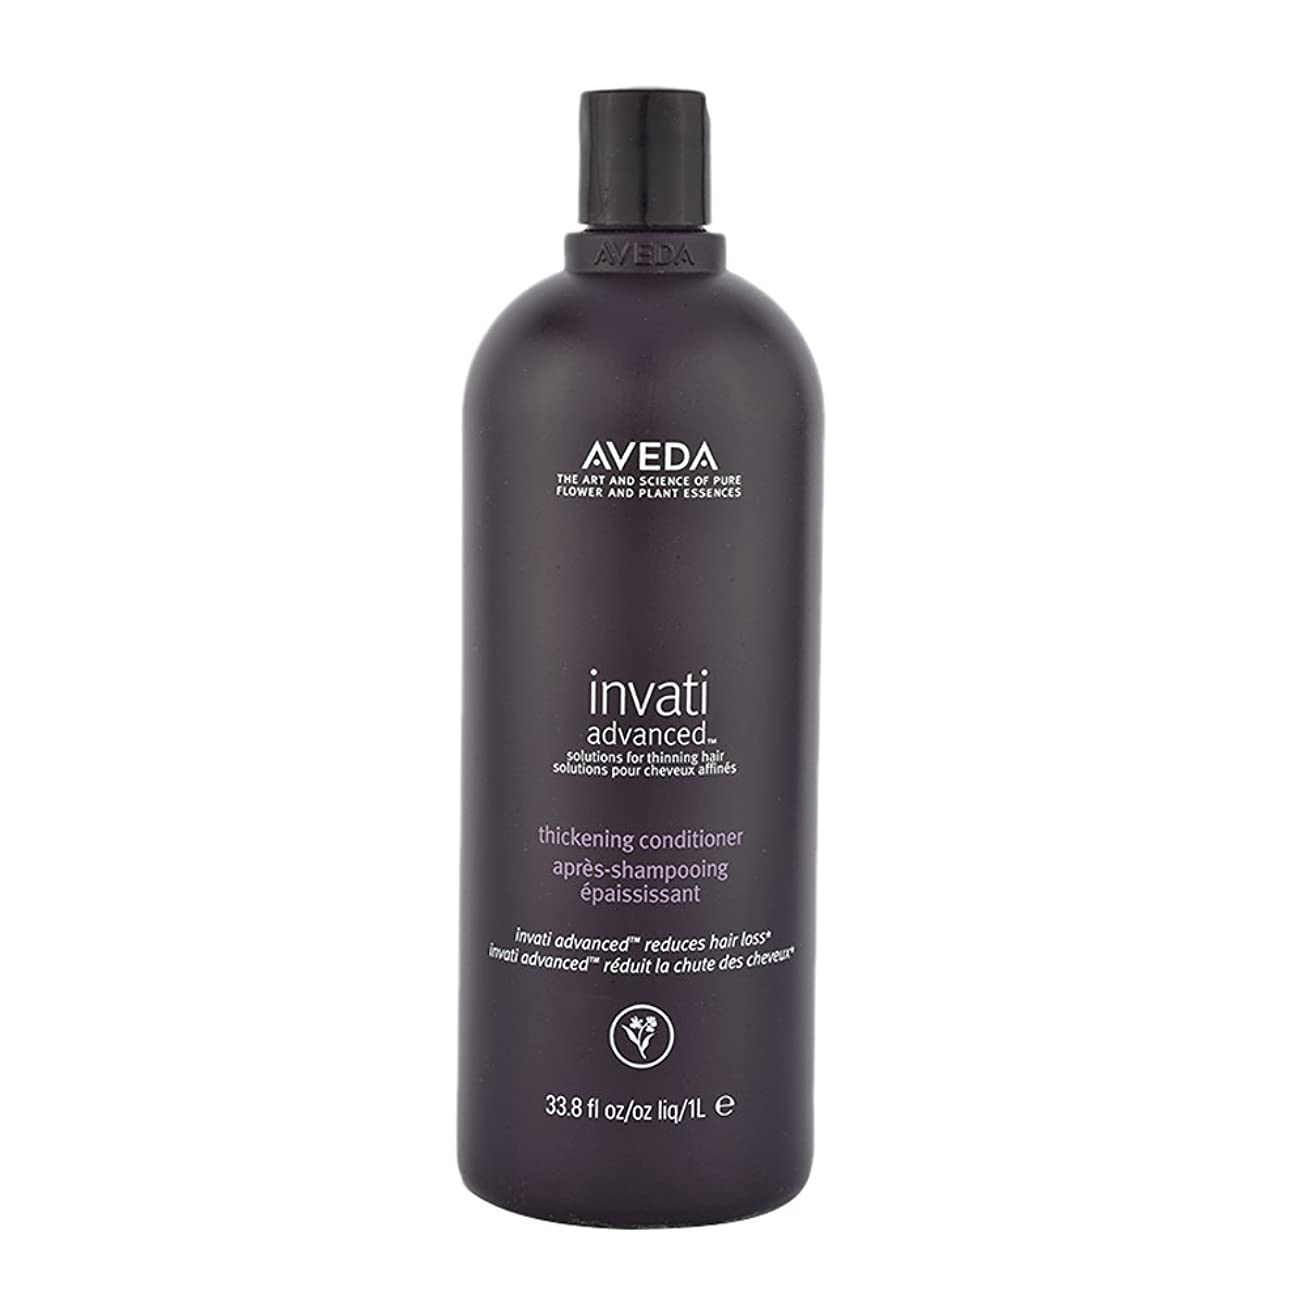 残忍な溶けた織るアヴェダ Invati Advanced Thickening Conditioner - Solutions For Thinning Hair, Reduces Hair Loss 1000ml/33.8oz並行輸入品